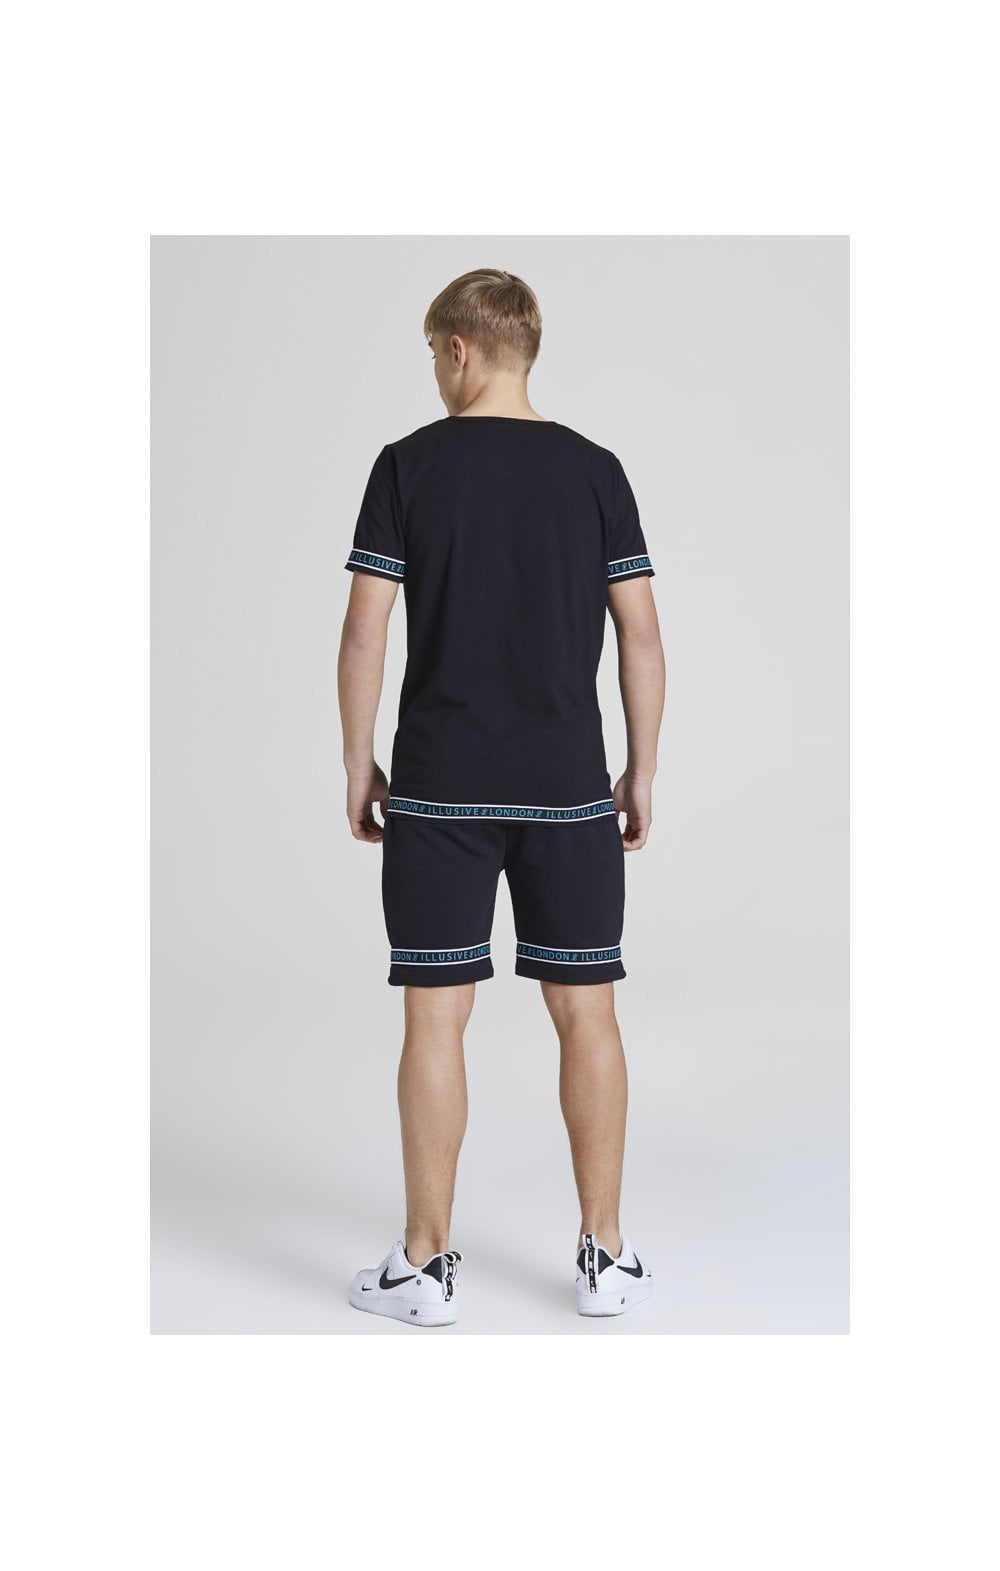 Illusive London Branded Jersey Shorts - Black & Teal Green (4)